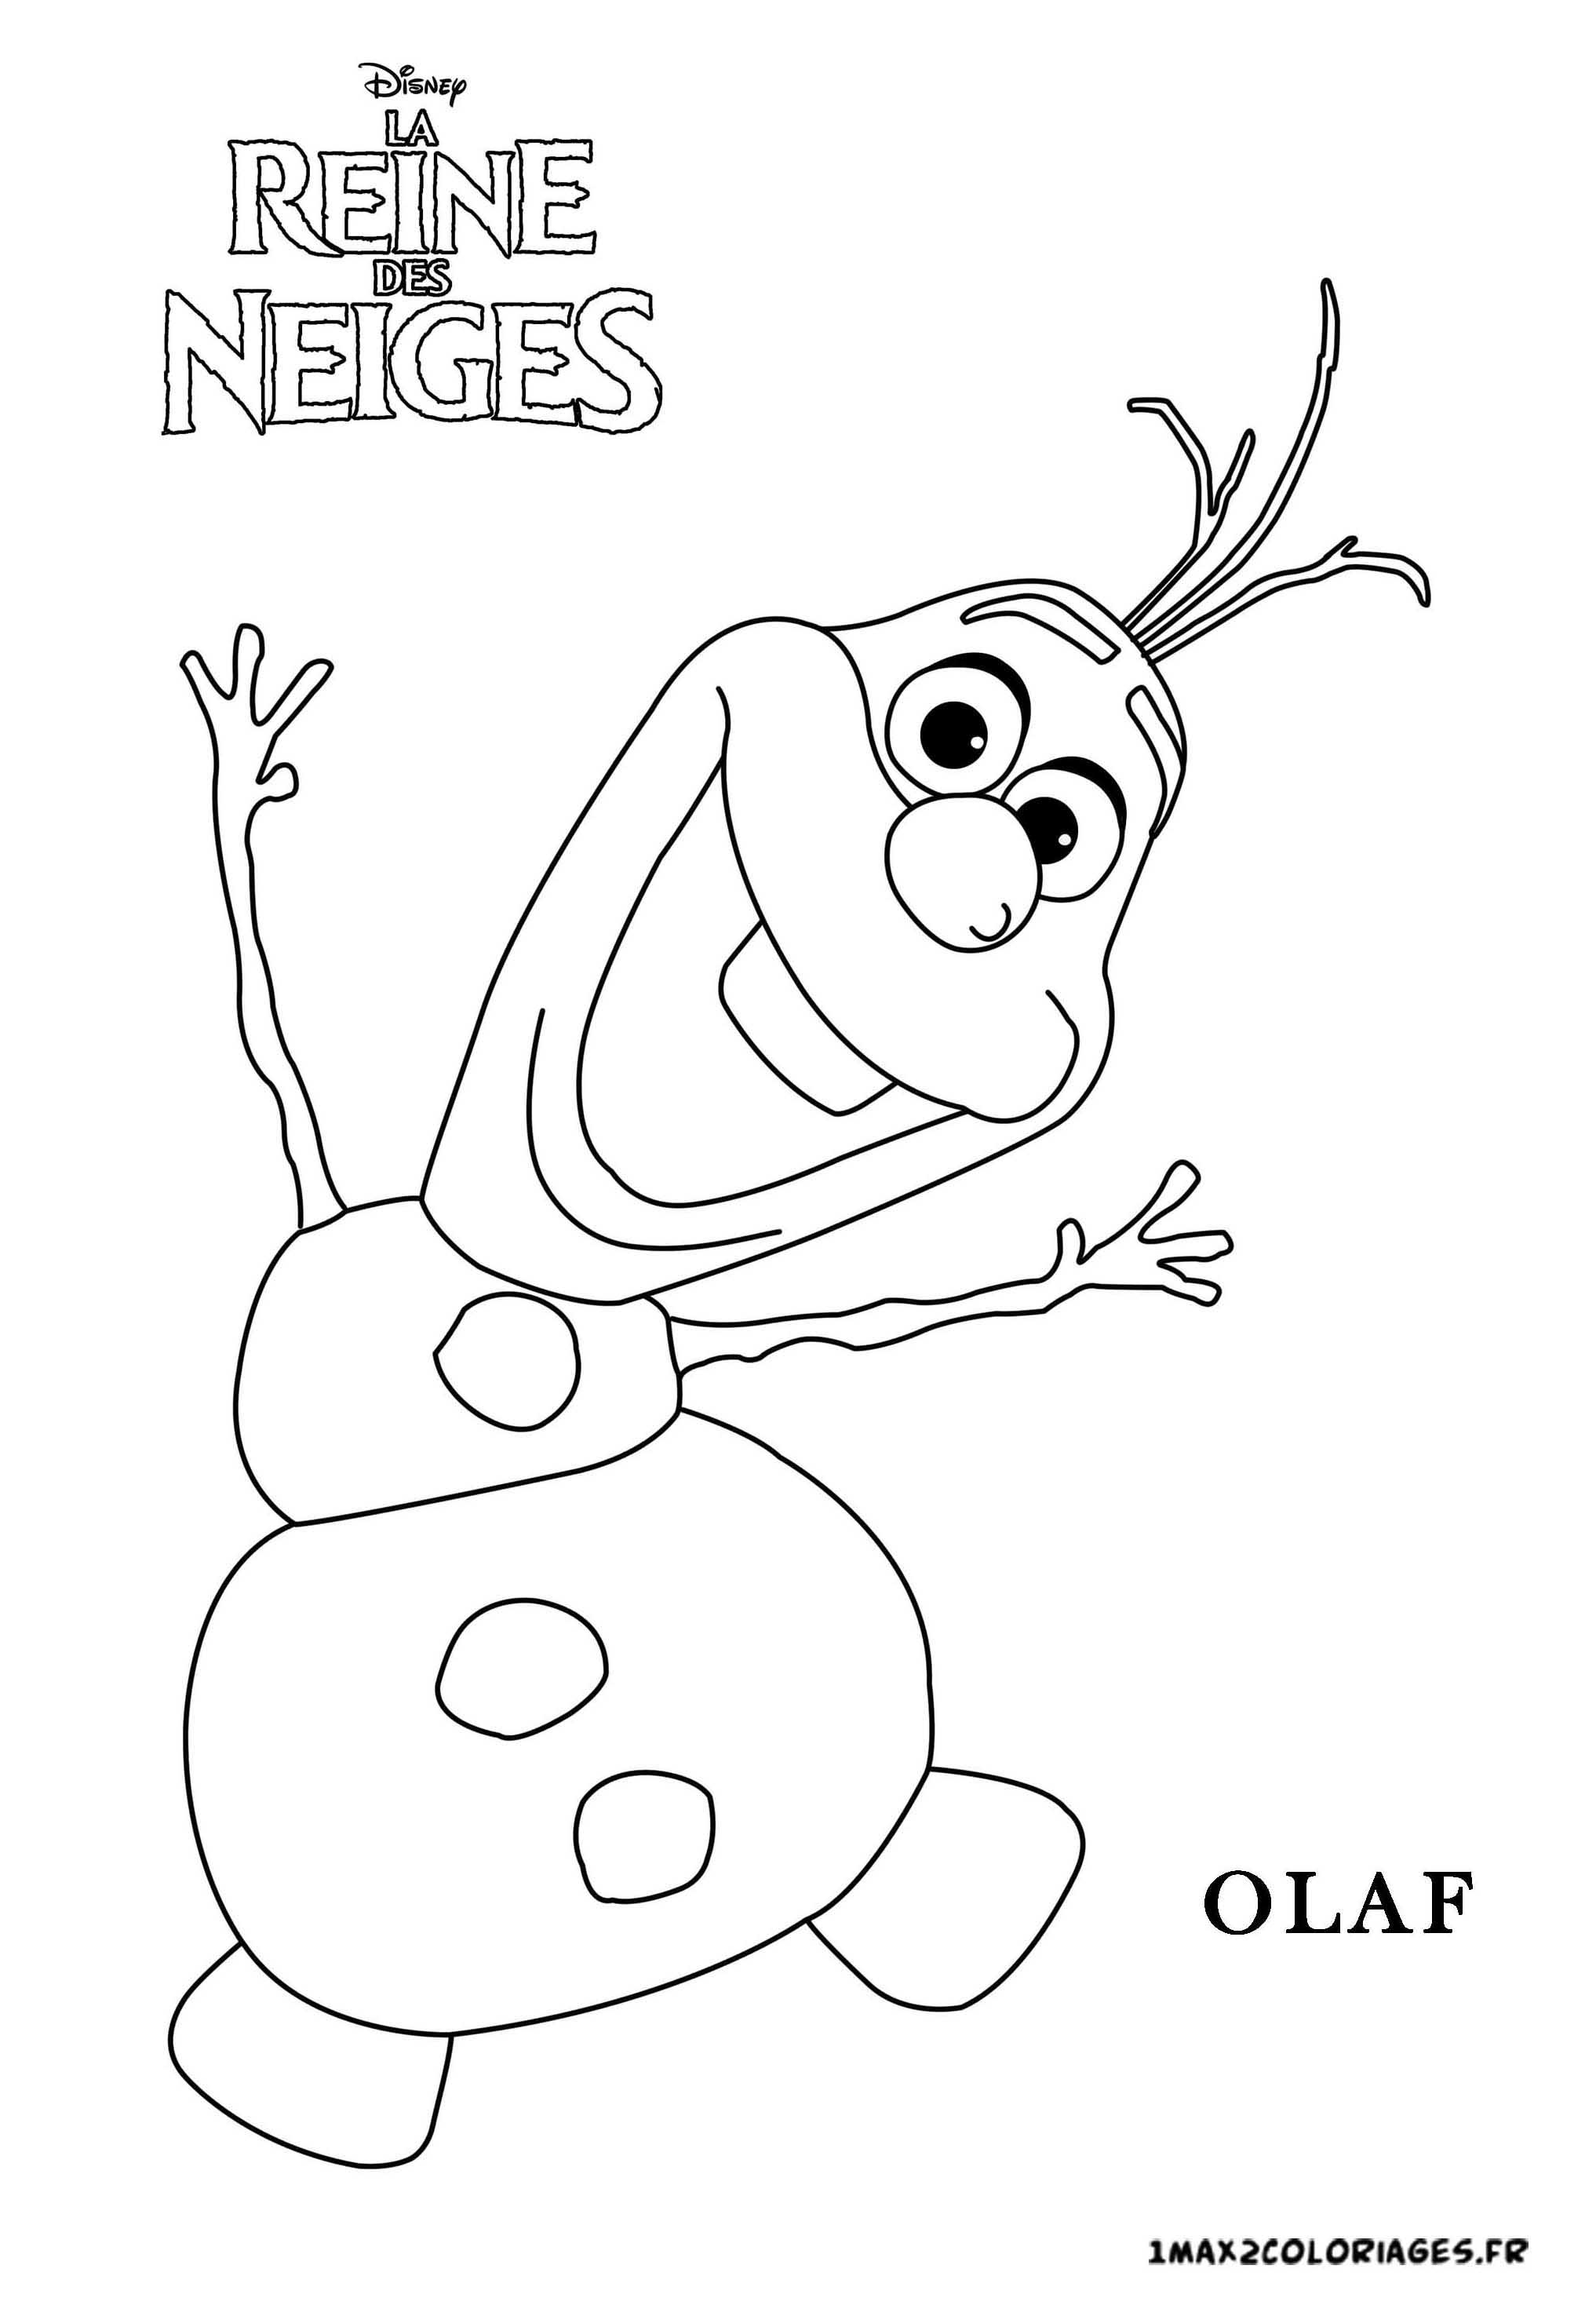 disney frozen coloring pages printable memes. Black Bedroom Furniture Sets. Home Design Ideas